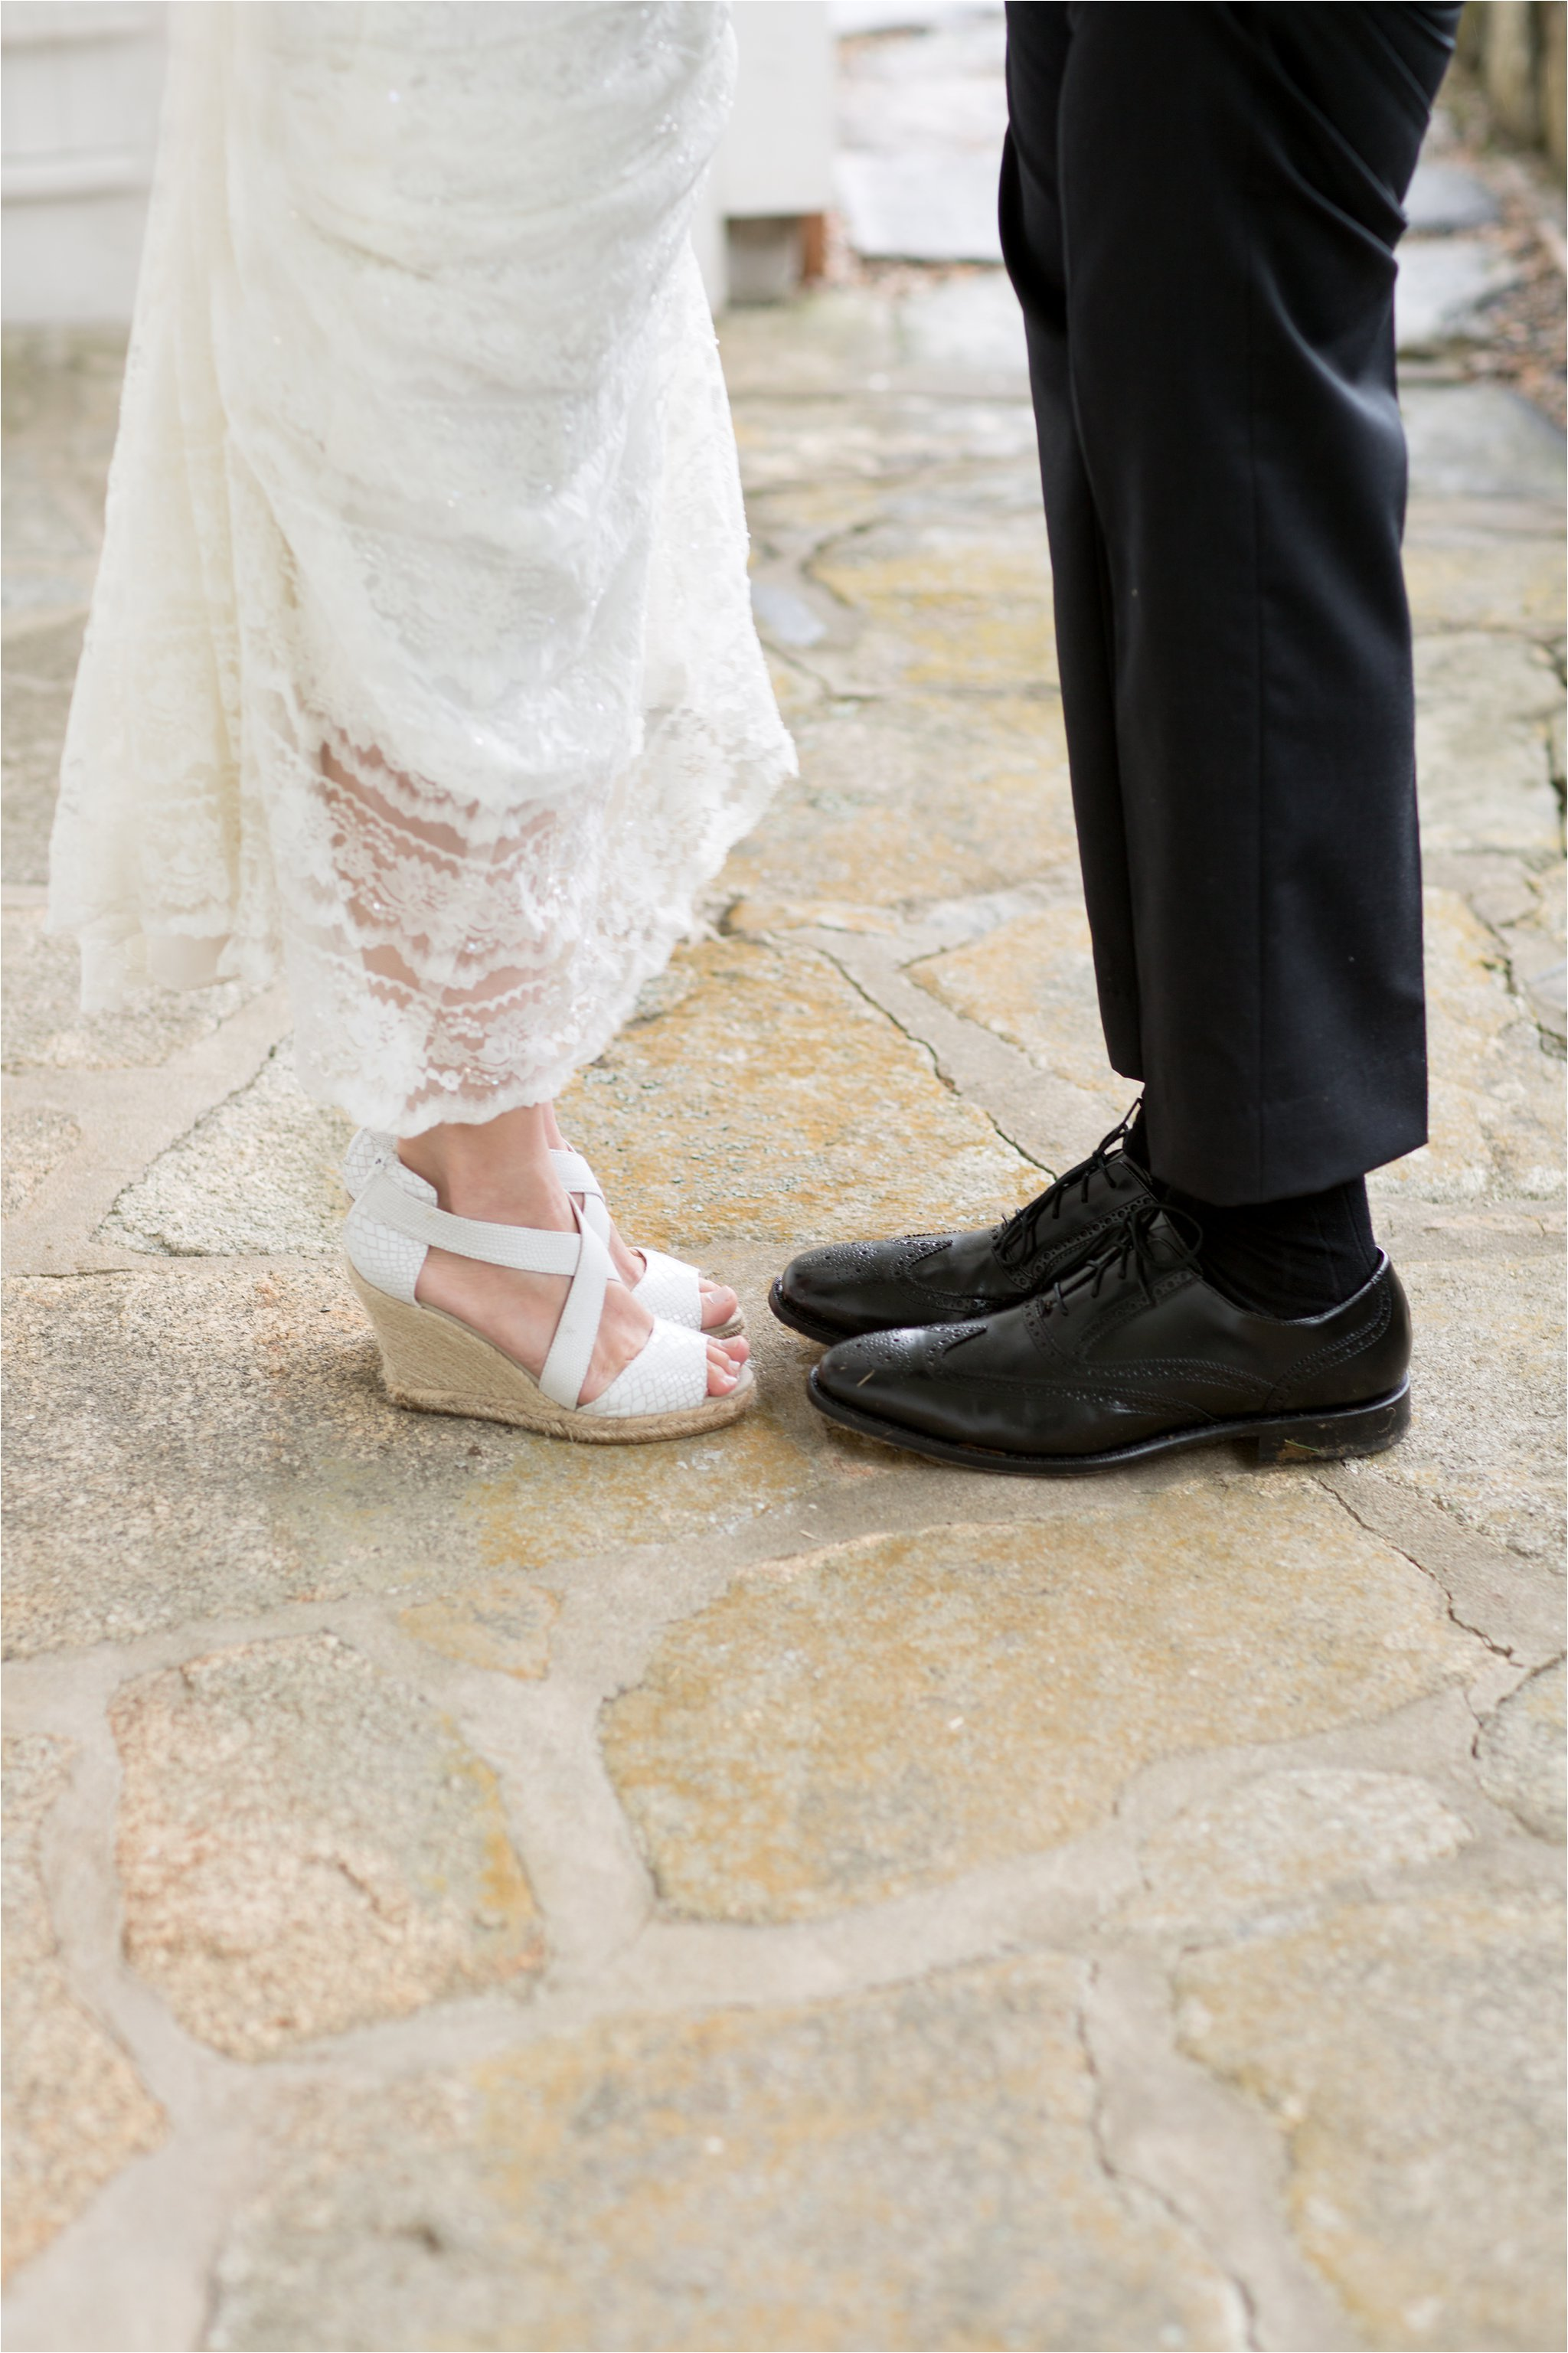 Shoes of Bride and Groom (C) Maundy Mitchell